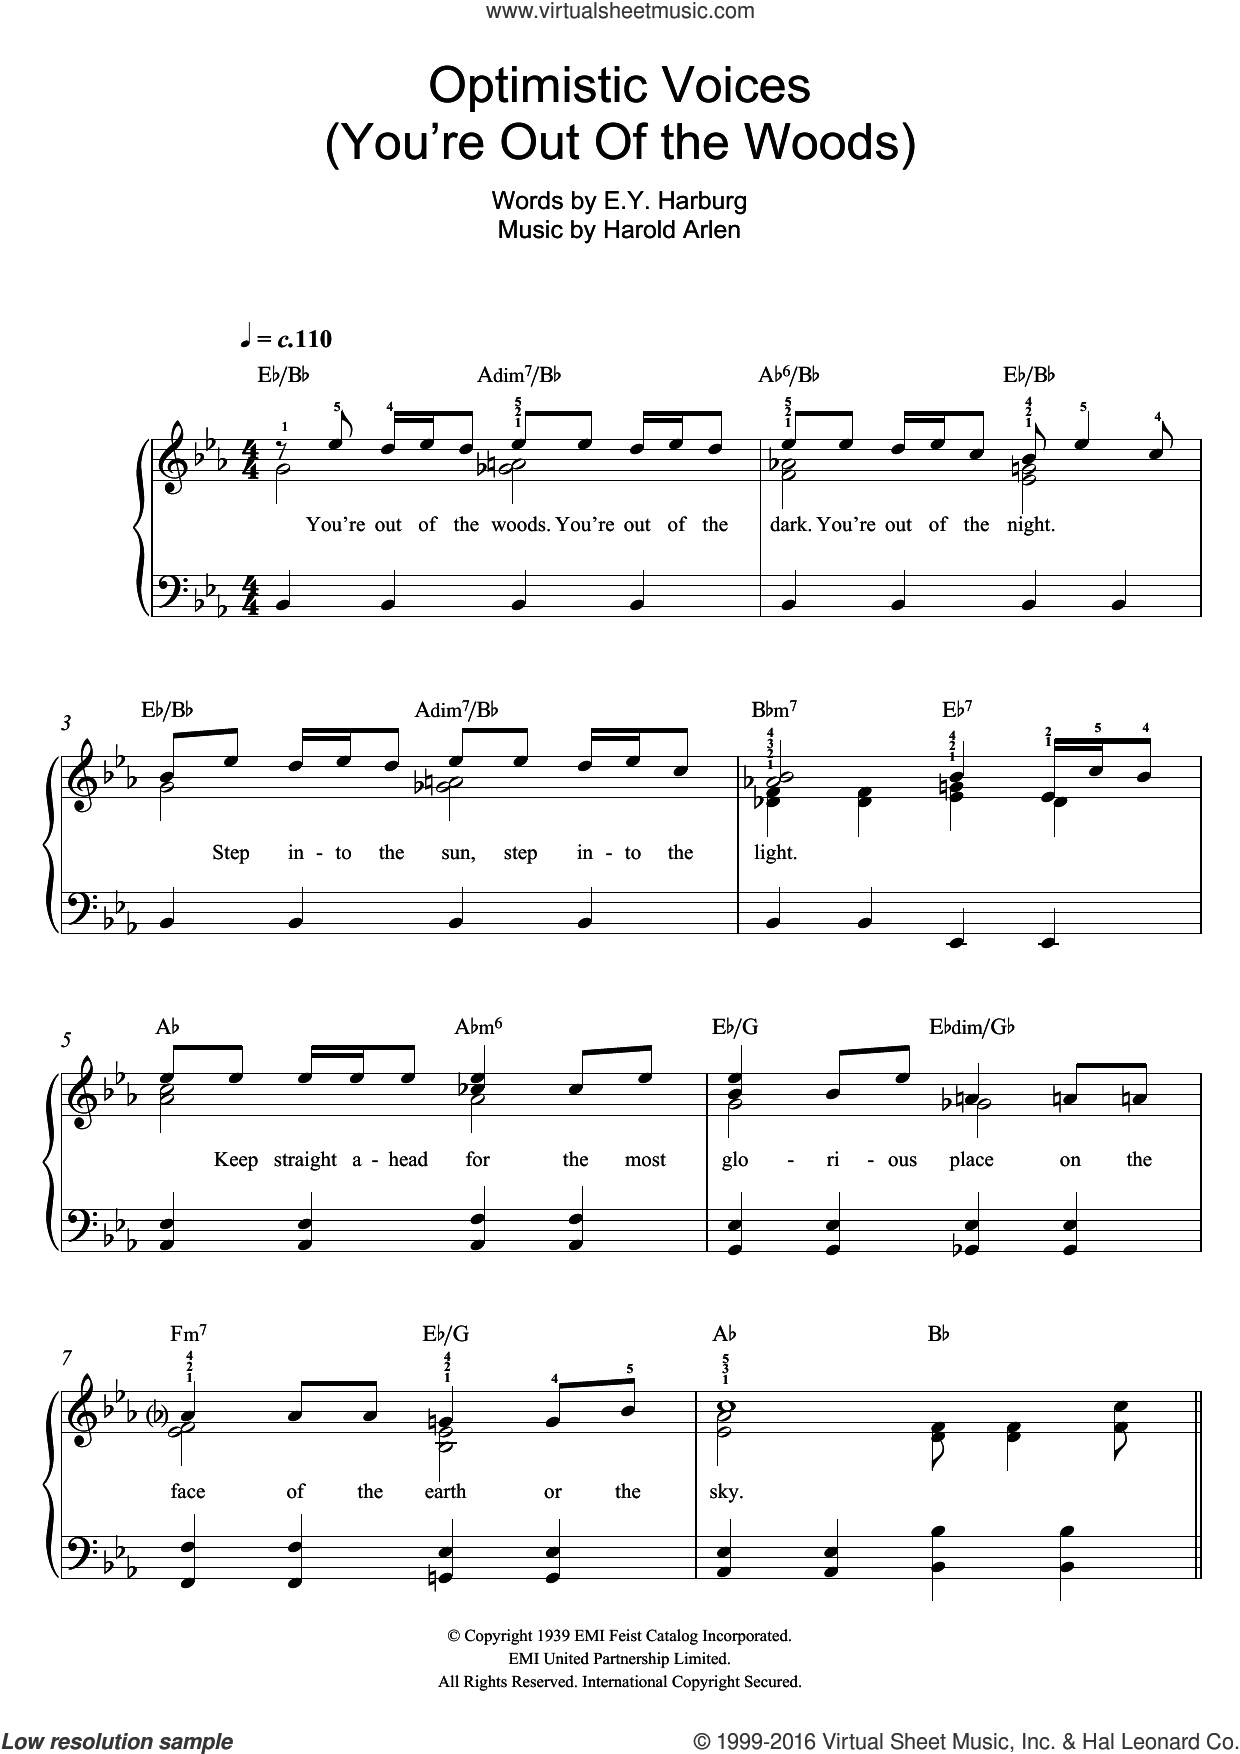 Optimistic Voices sheet music for piano solo by Harold Arlen and E.Y. Harburg, easy skill level